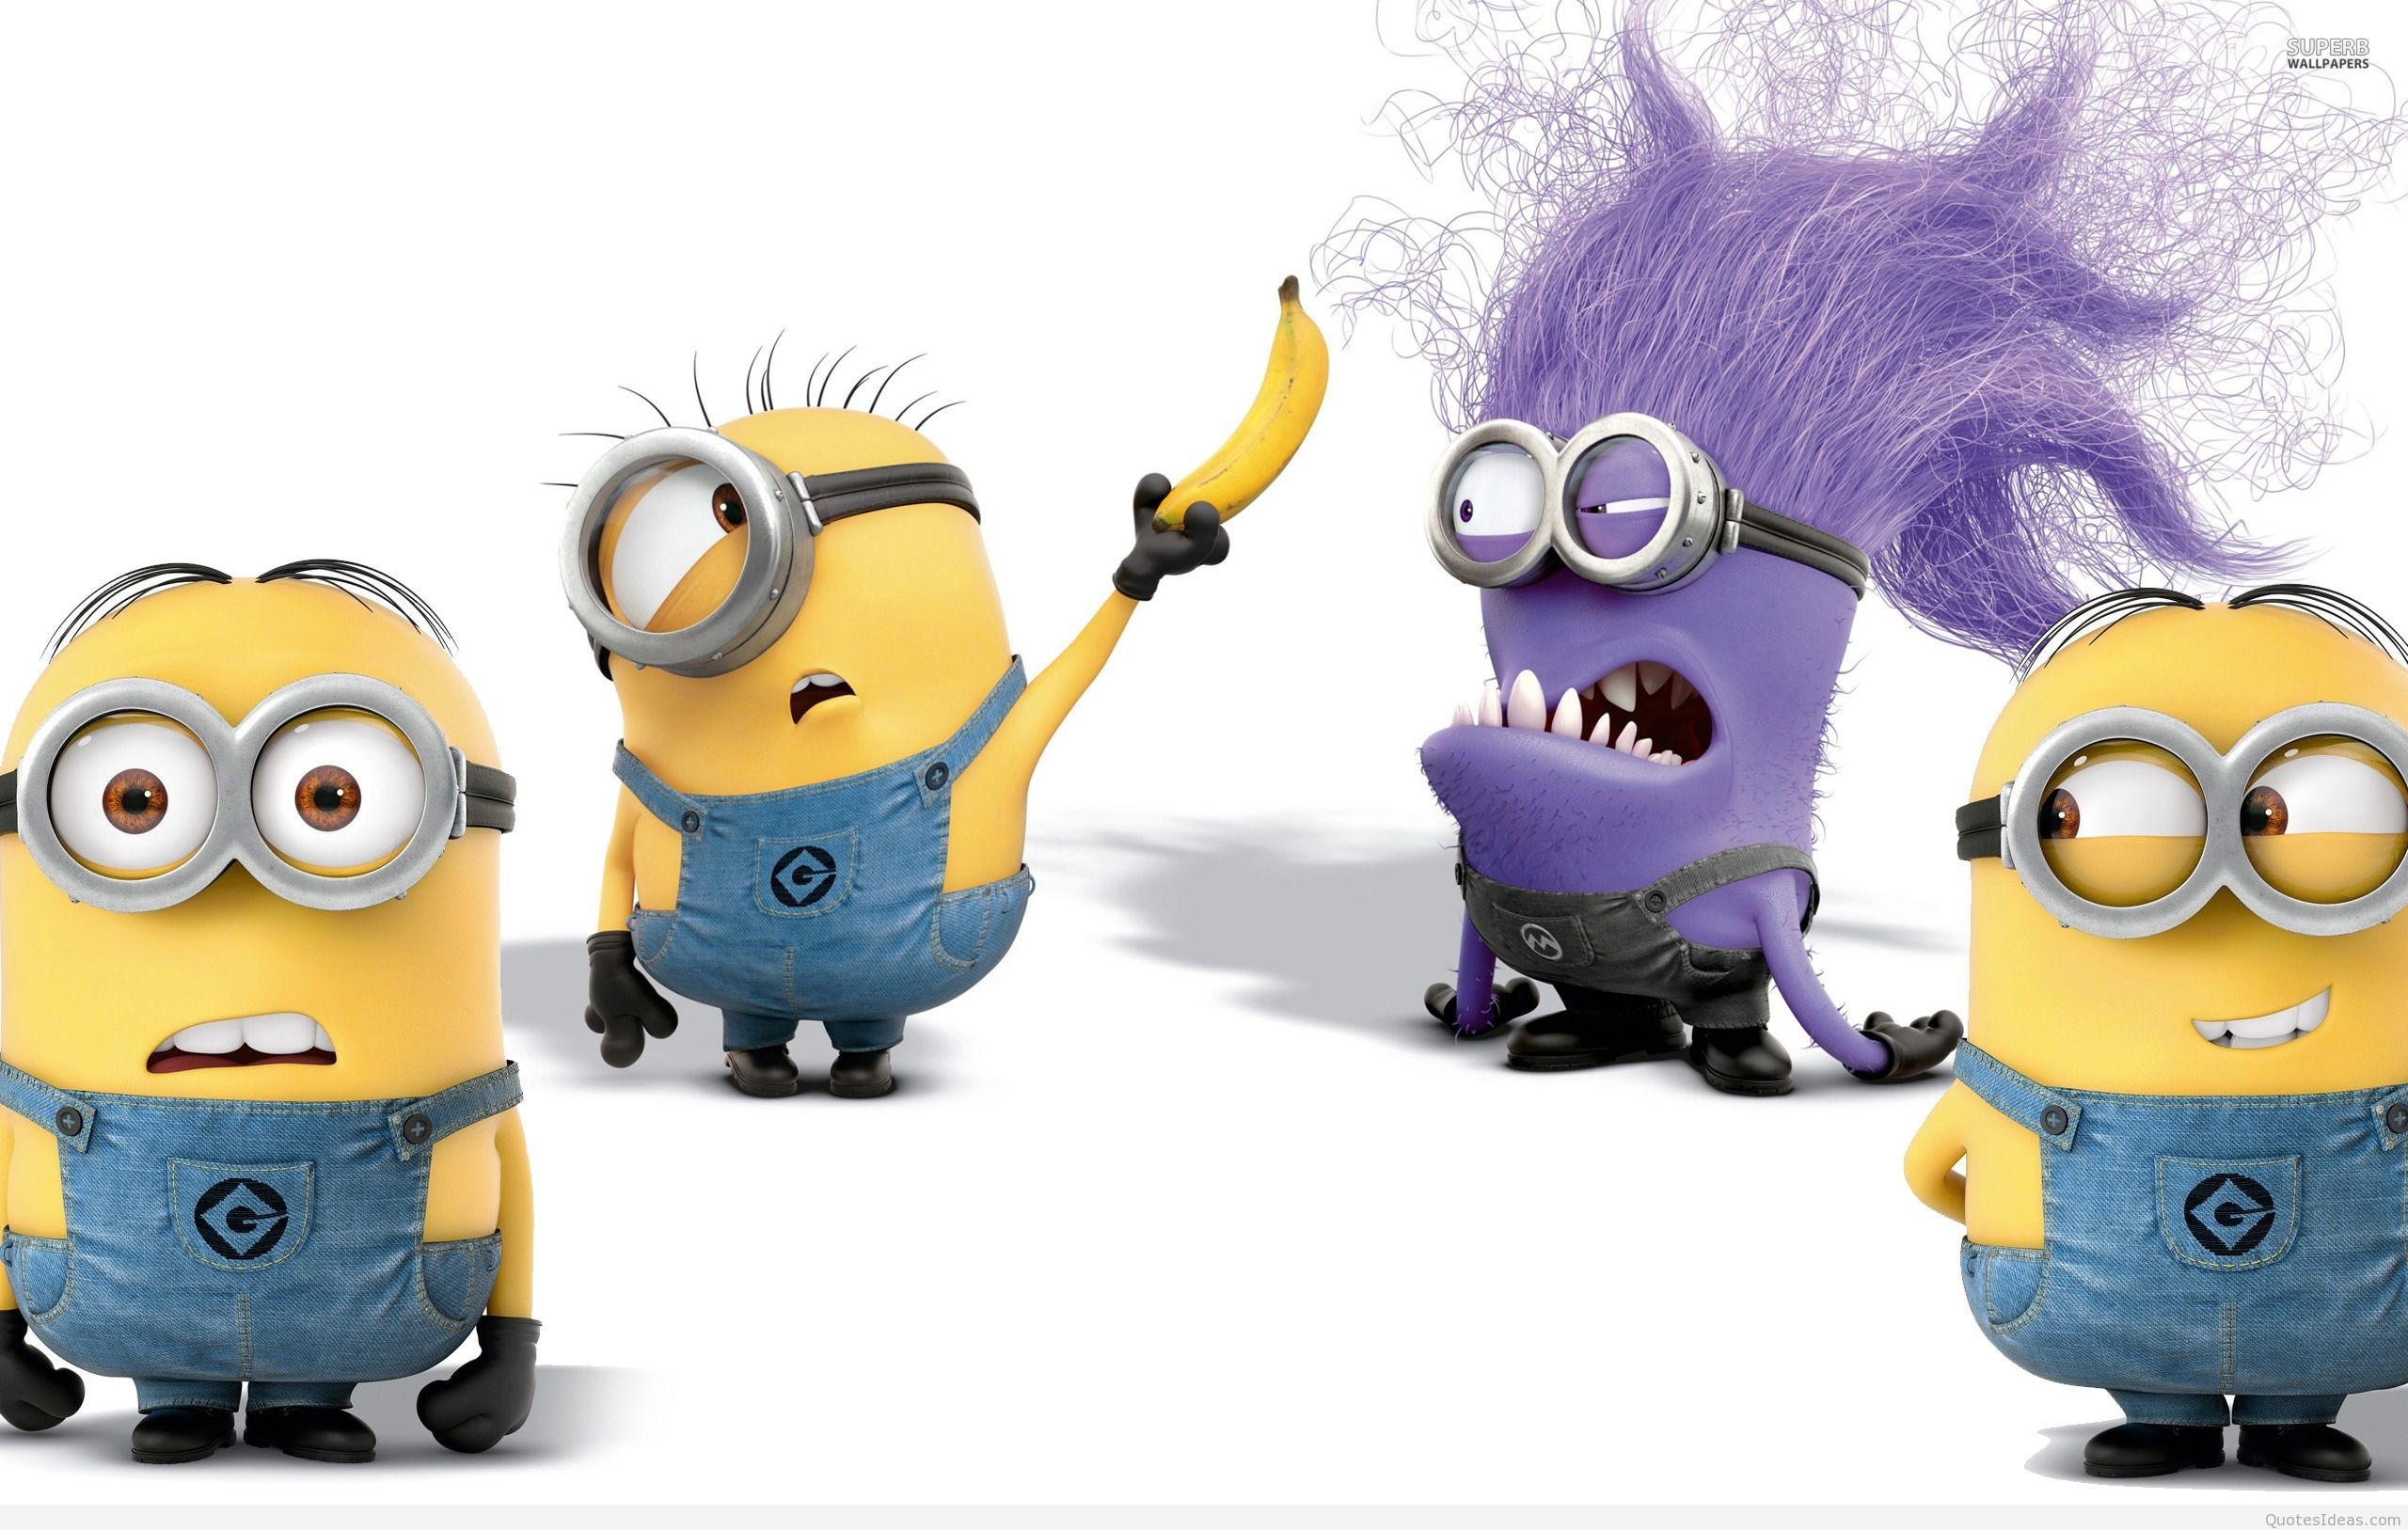 … minions-despicable-me-2-wallpapers-funny-movie-images- …